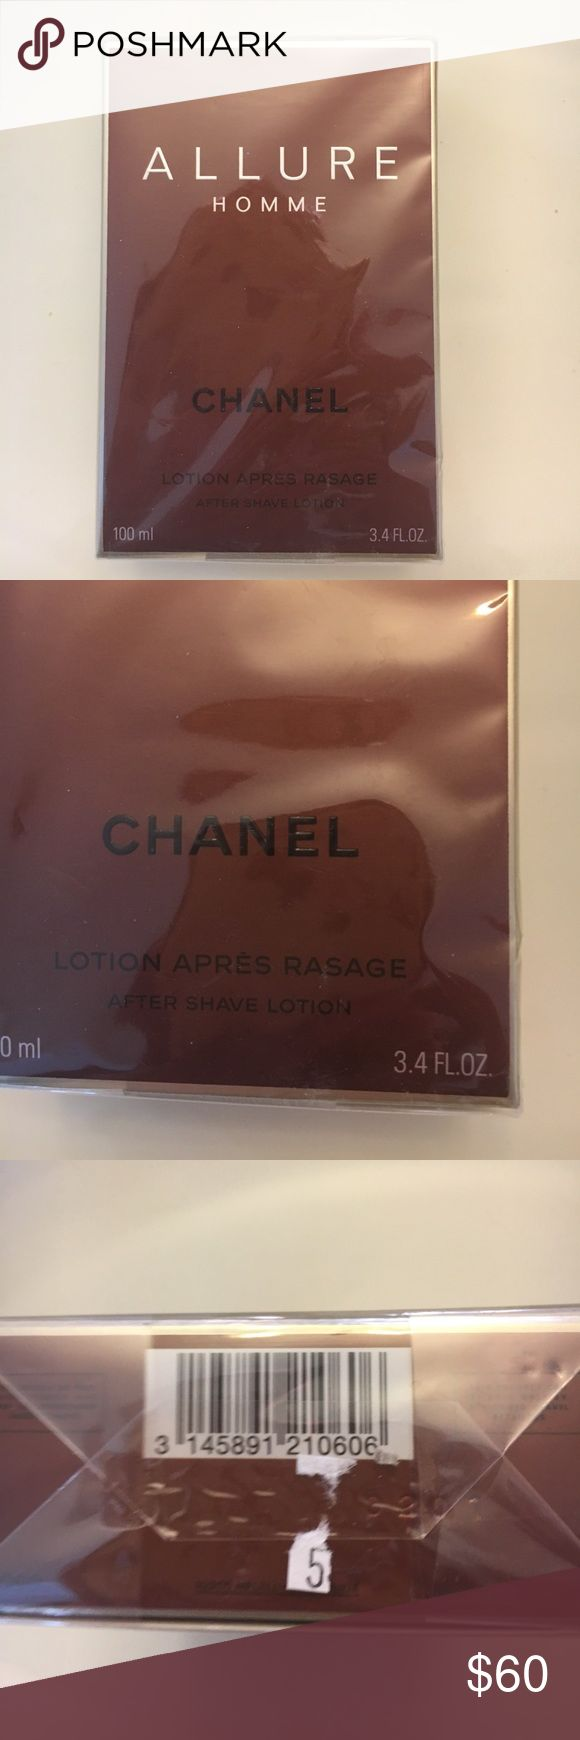 Allure  Chanel Homme After Shave Lotion 3.4 fl oz. brand new and wrapped in box. CHANEL Other